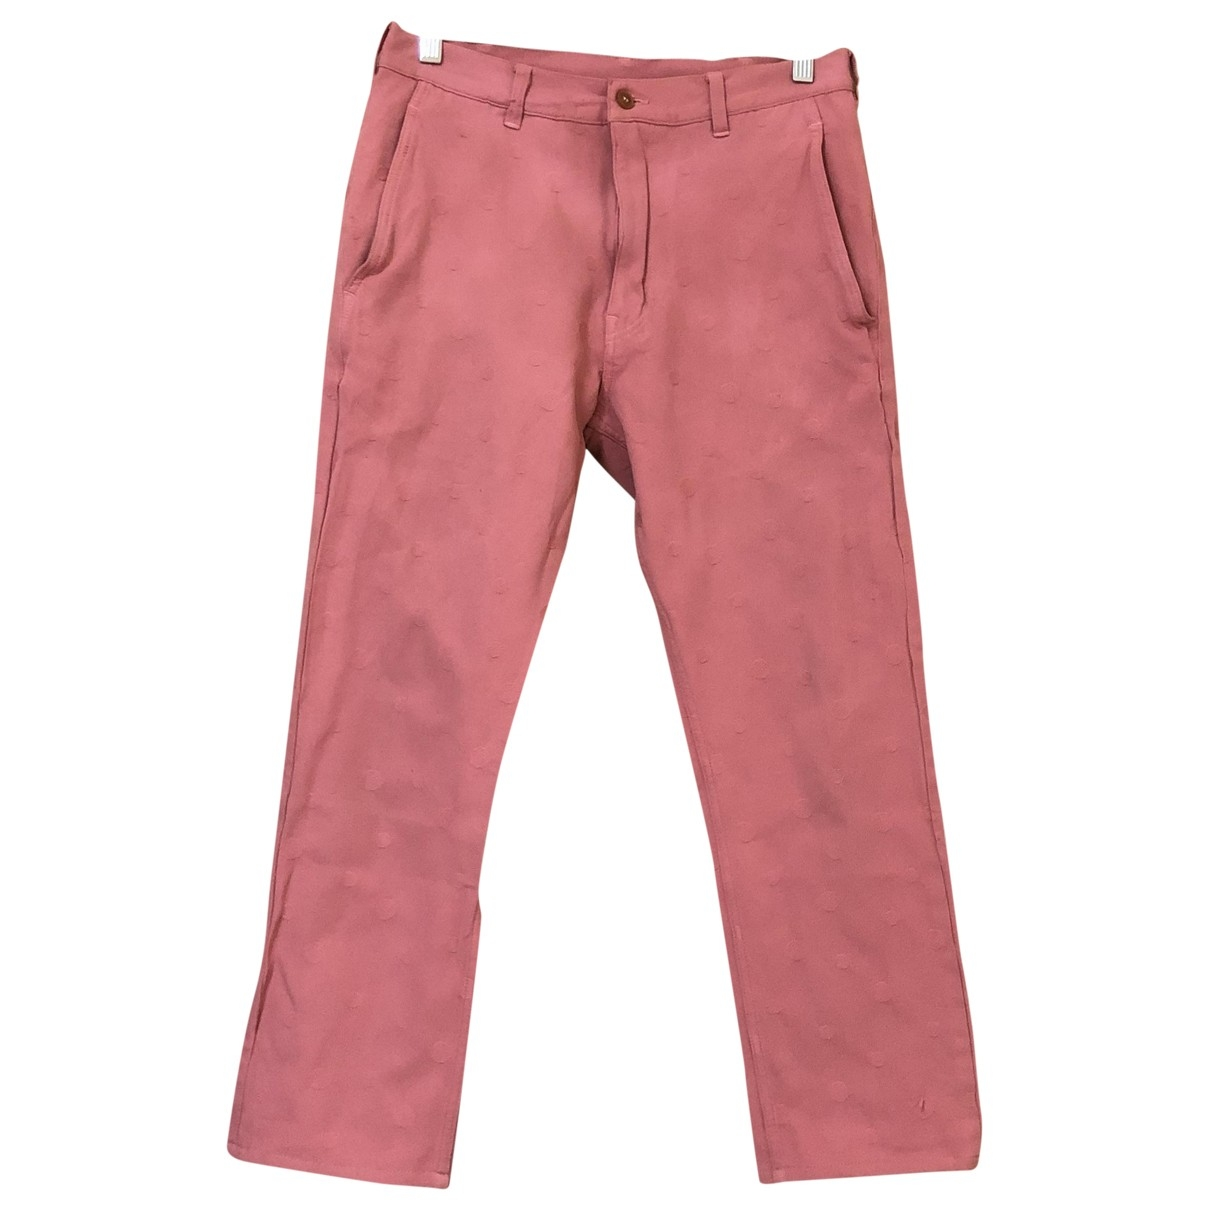 Comme Des Garcons \N Pink Trousers for Men XS International